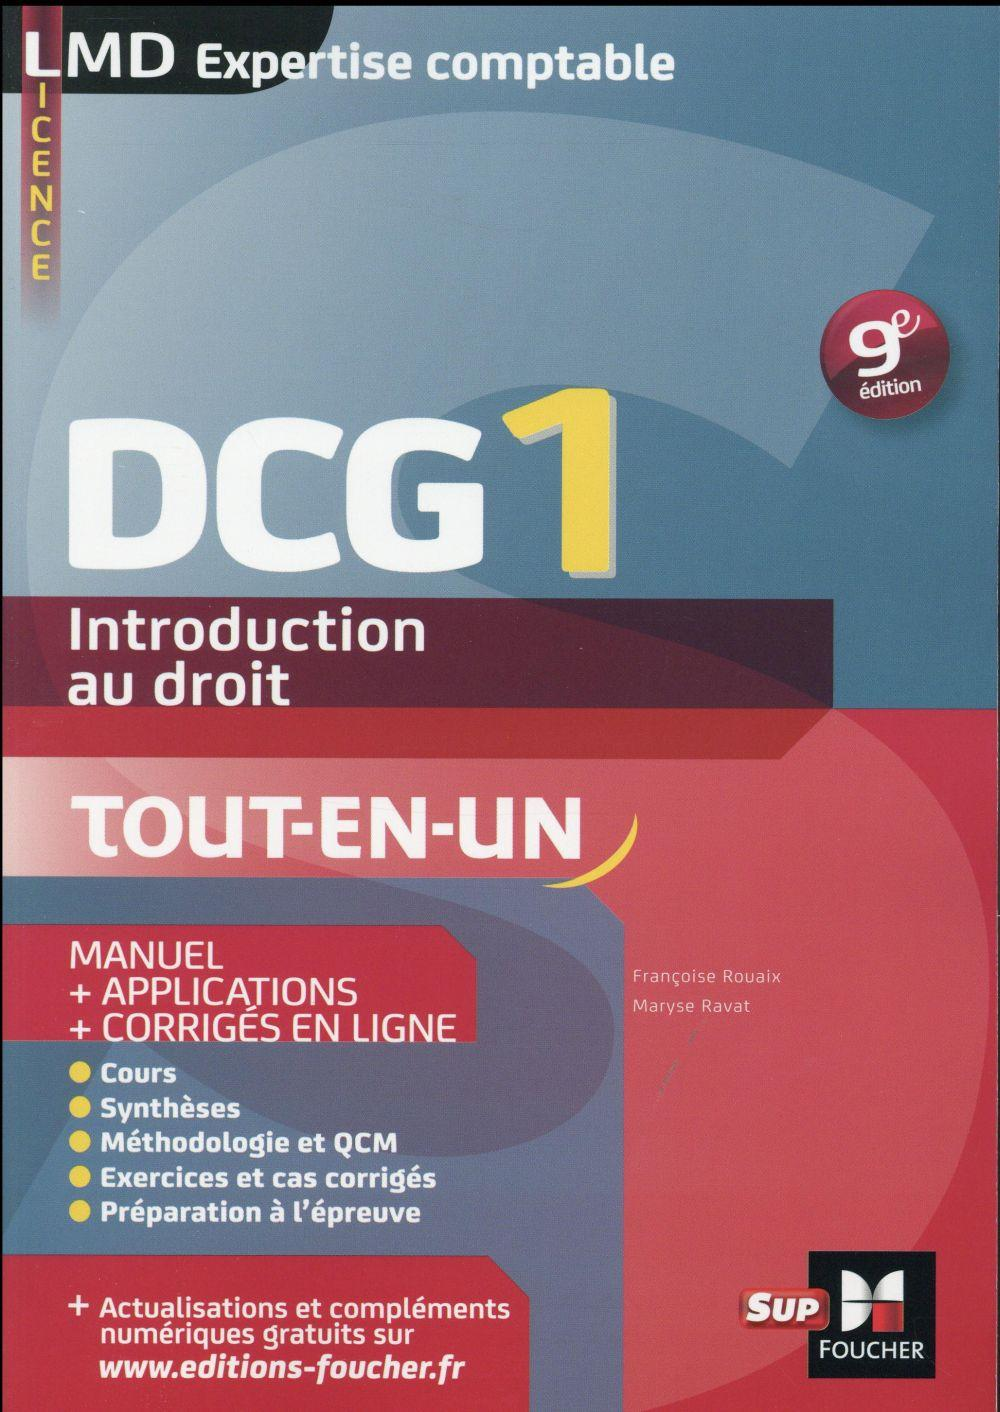 DCG 1 ; introduction au droit ; manuel et applications millésime 2015-2016 (9e édition)  - Maryse Ravat  - Marie-Paule Schneider  - Francoise Rouaix